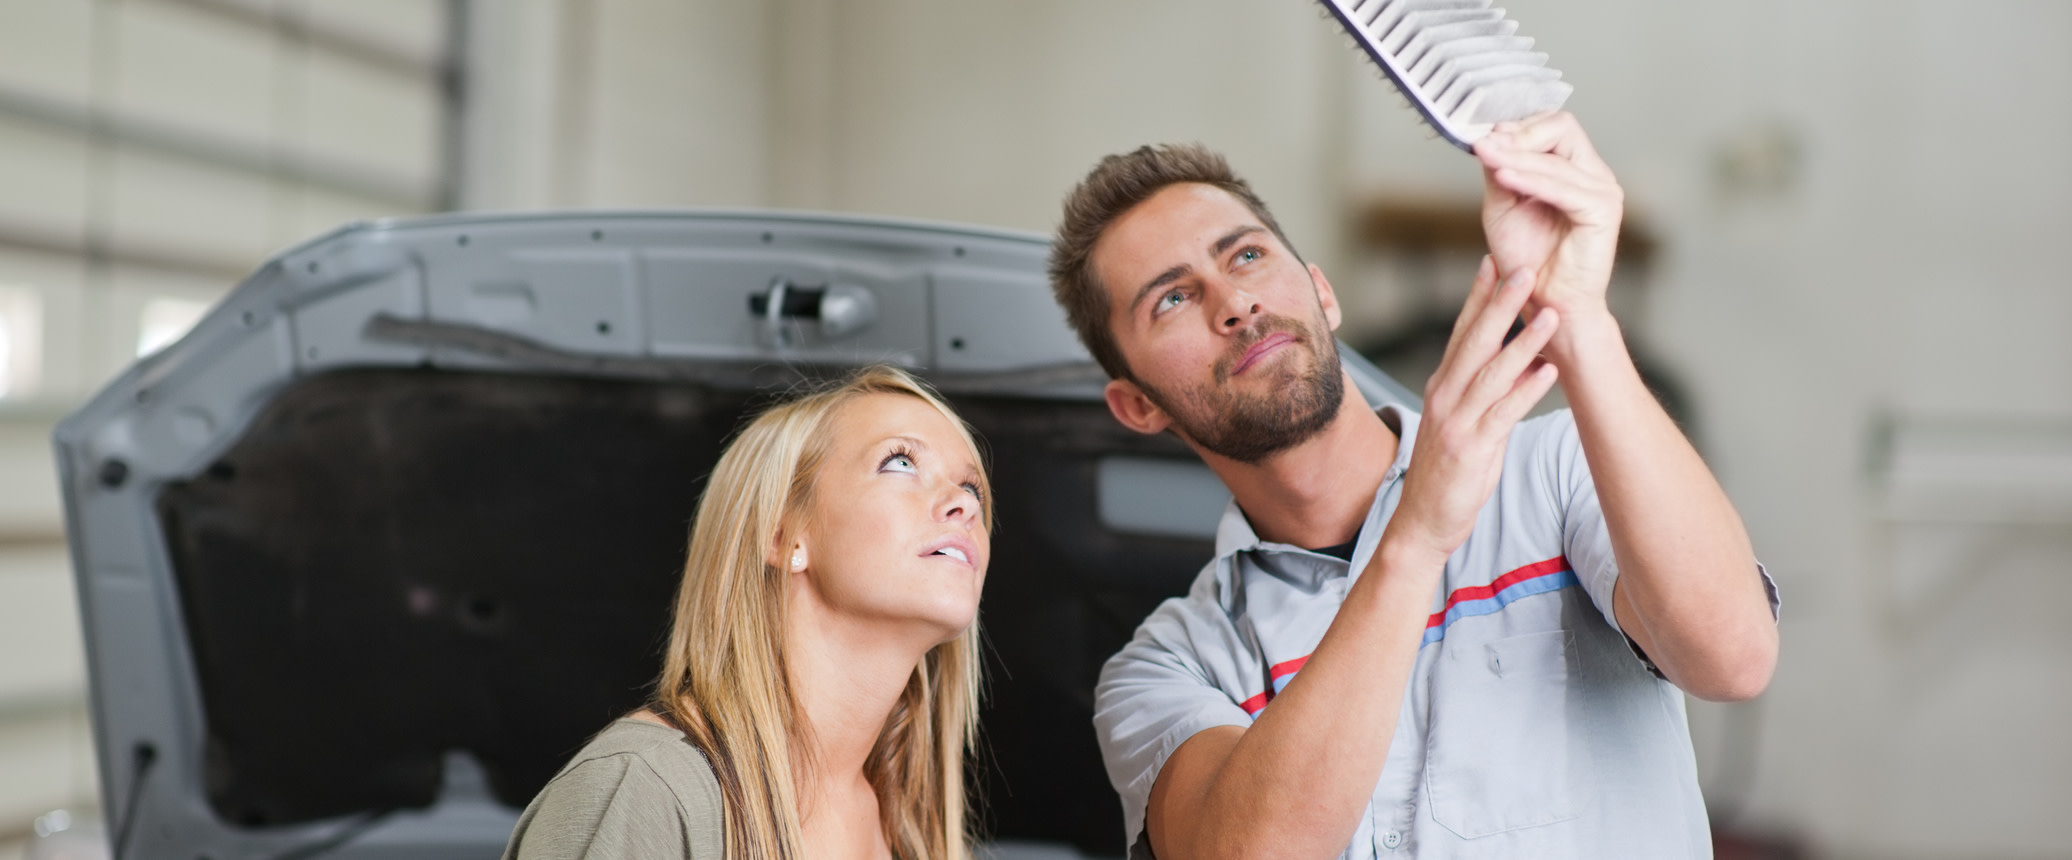 Cabin Air Filter Replacement Service in Waukesha, WI